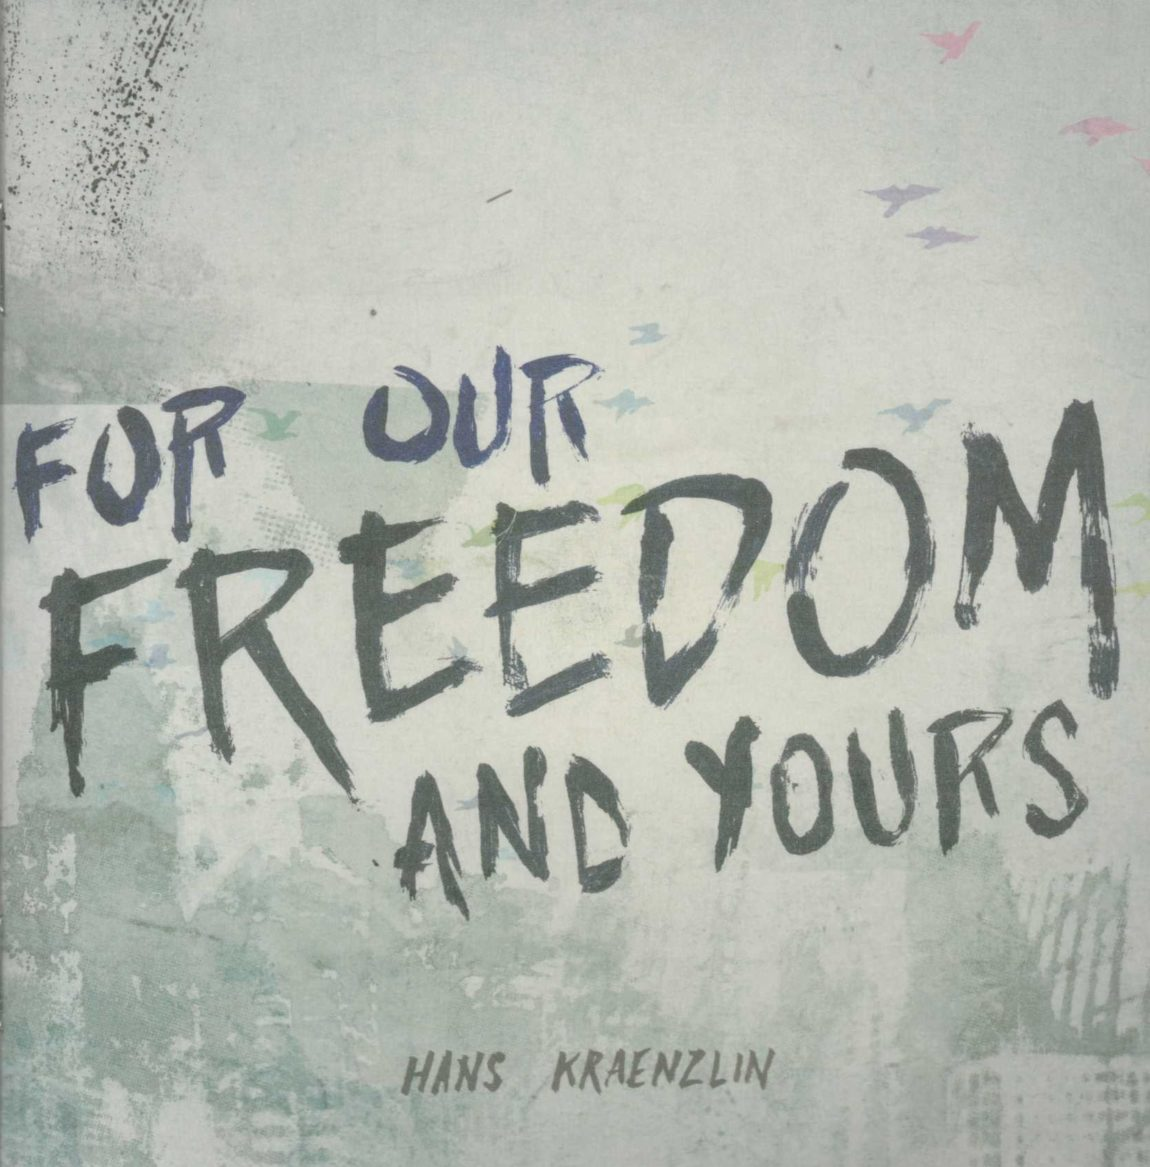 For-our-freedom-and-yours.jpeg